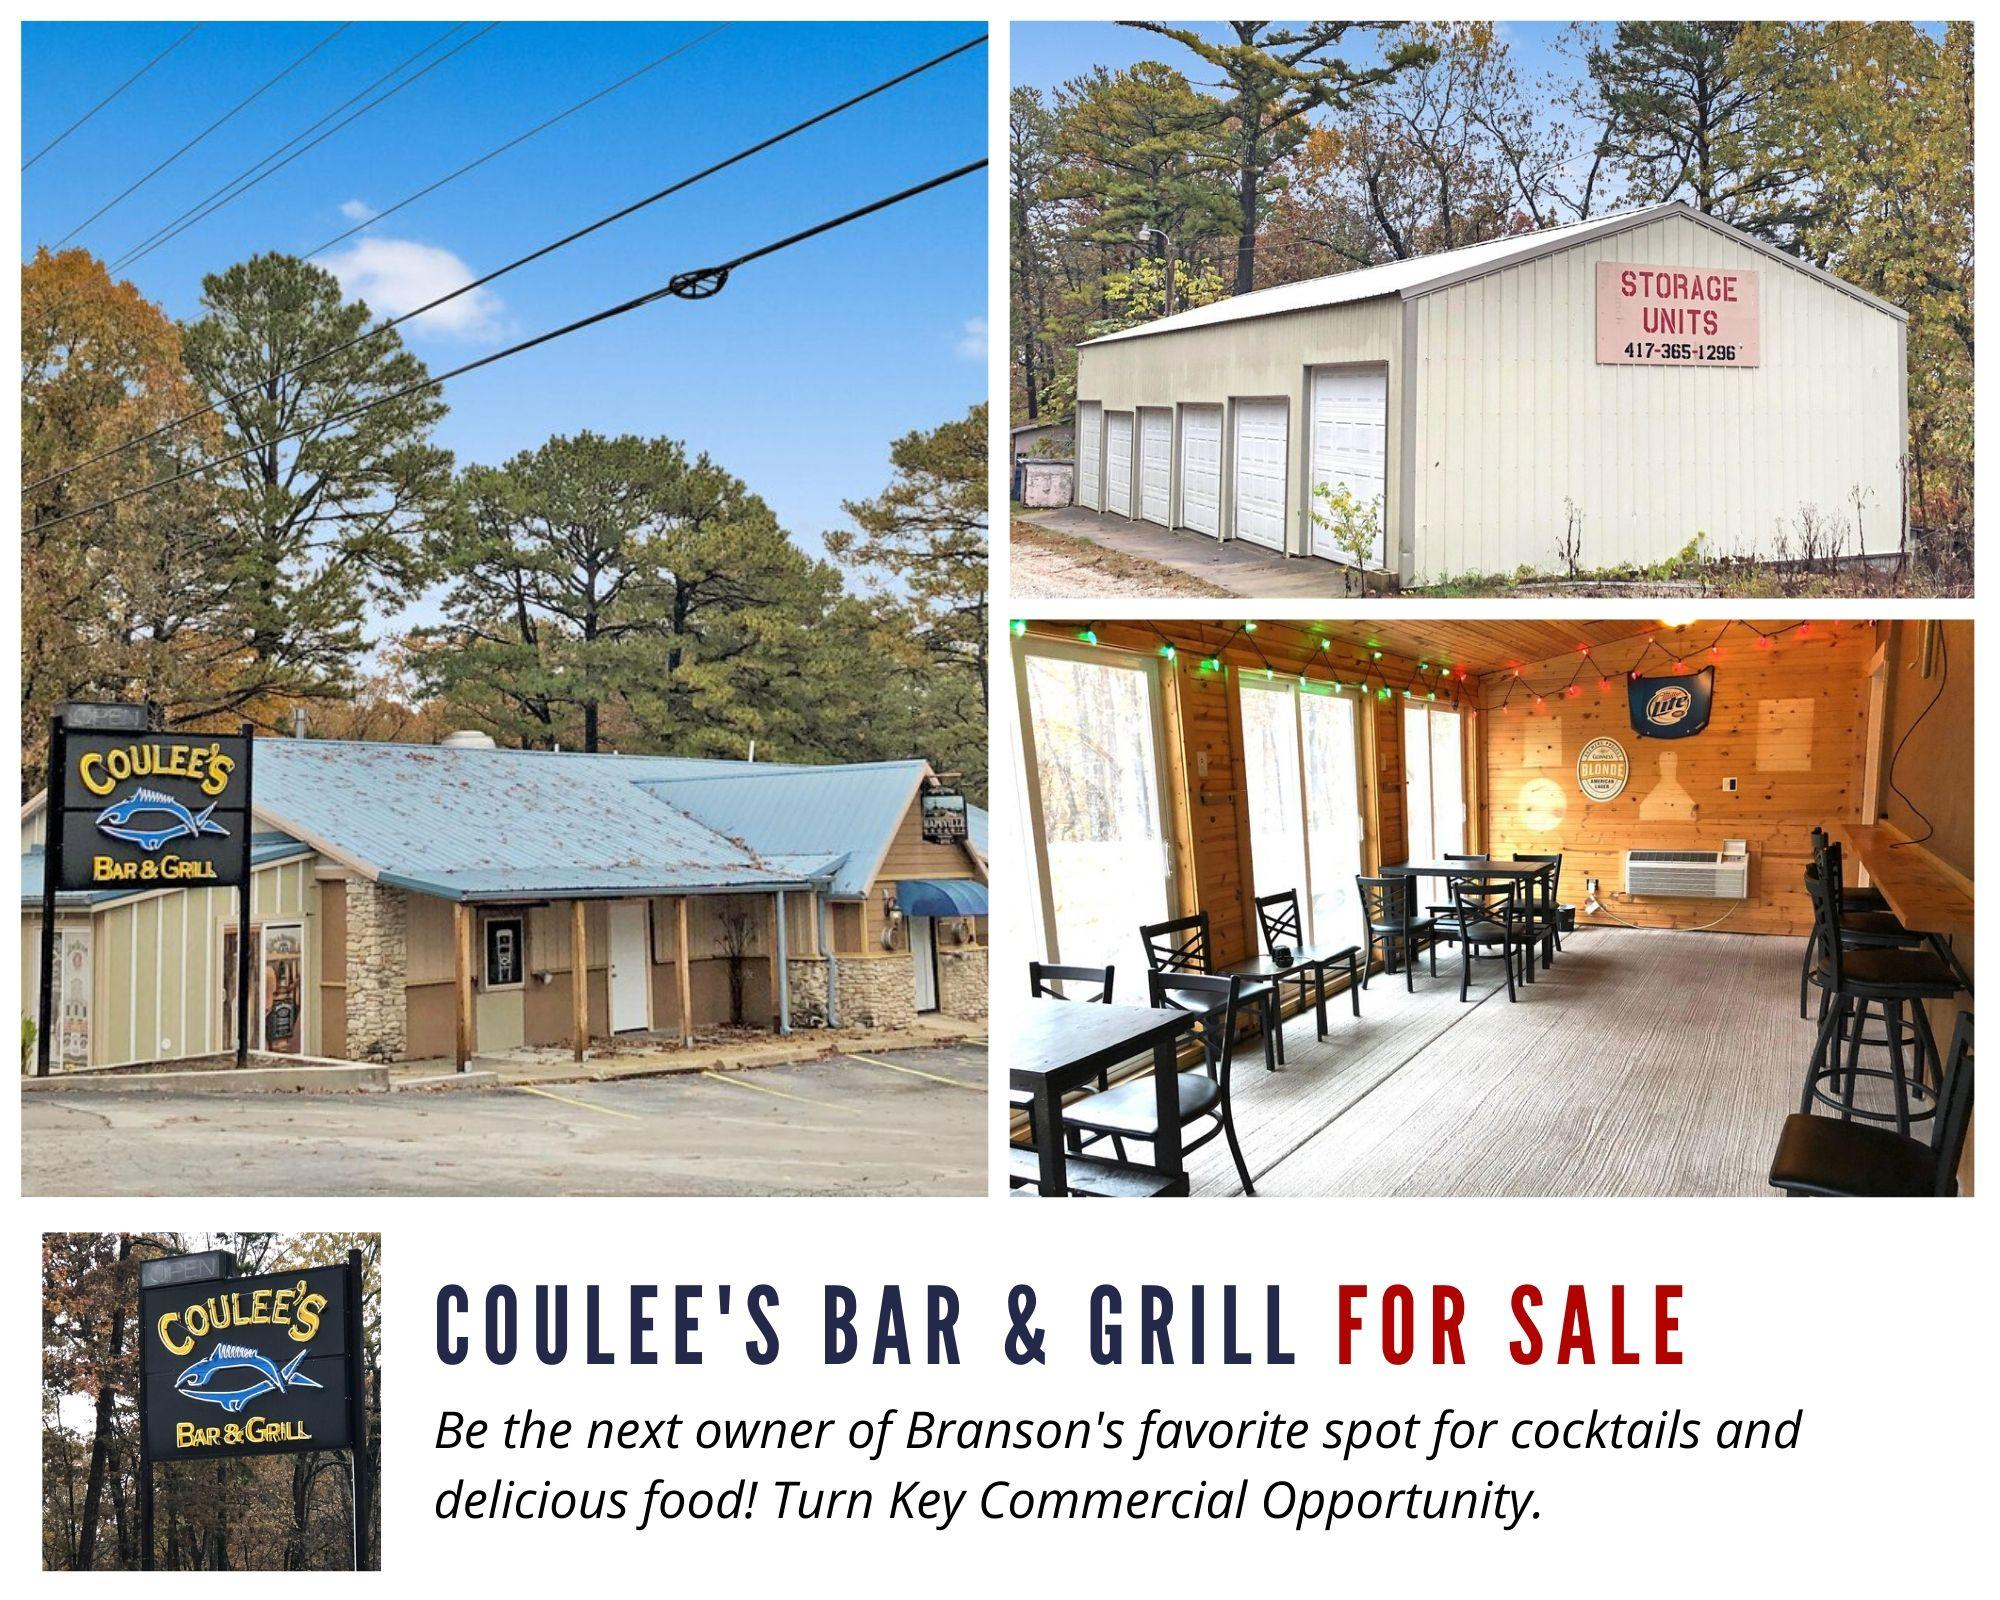 5378 State Hwy Branson, MO 65616